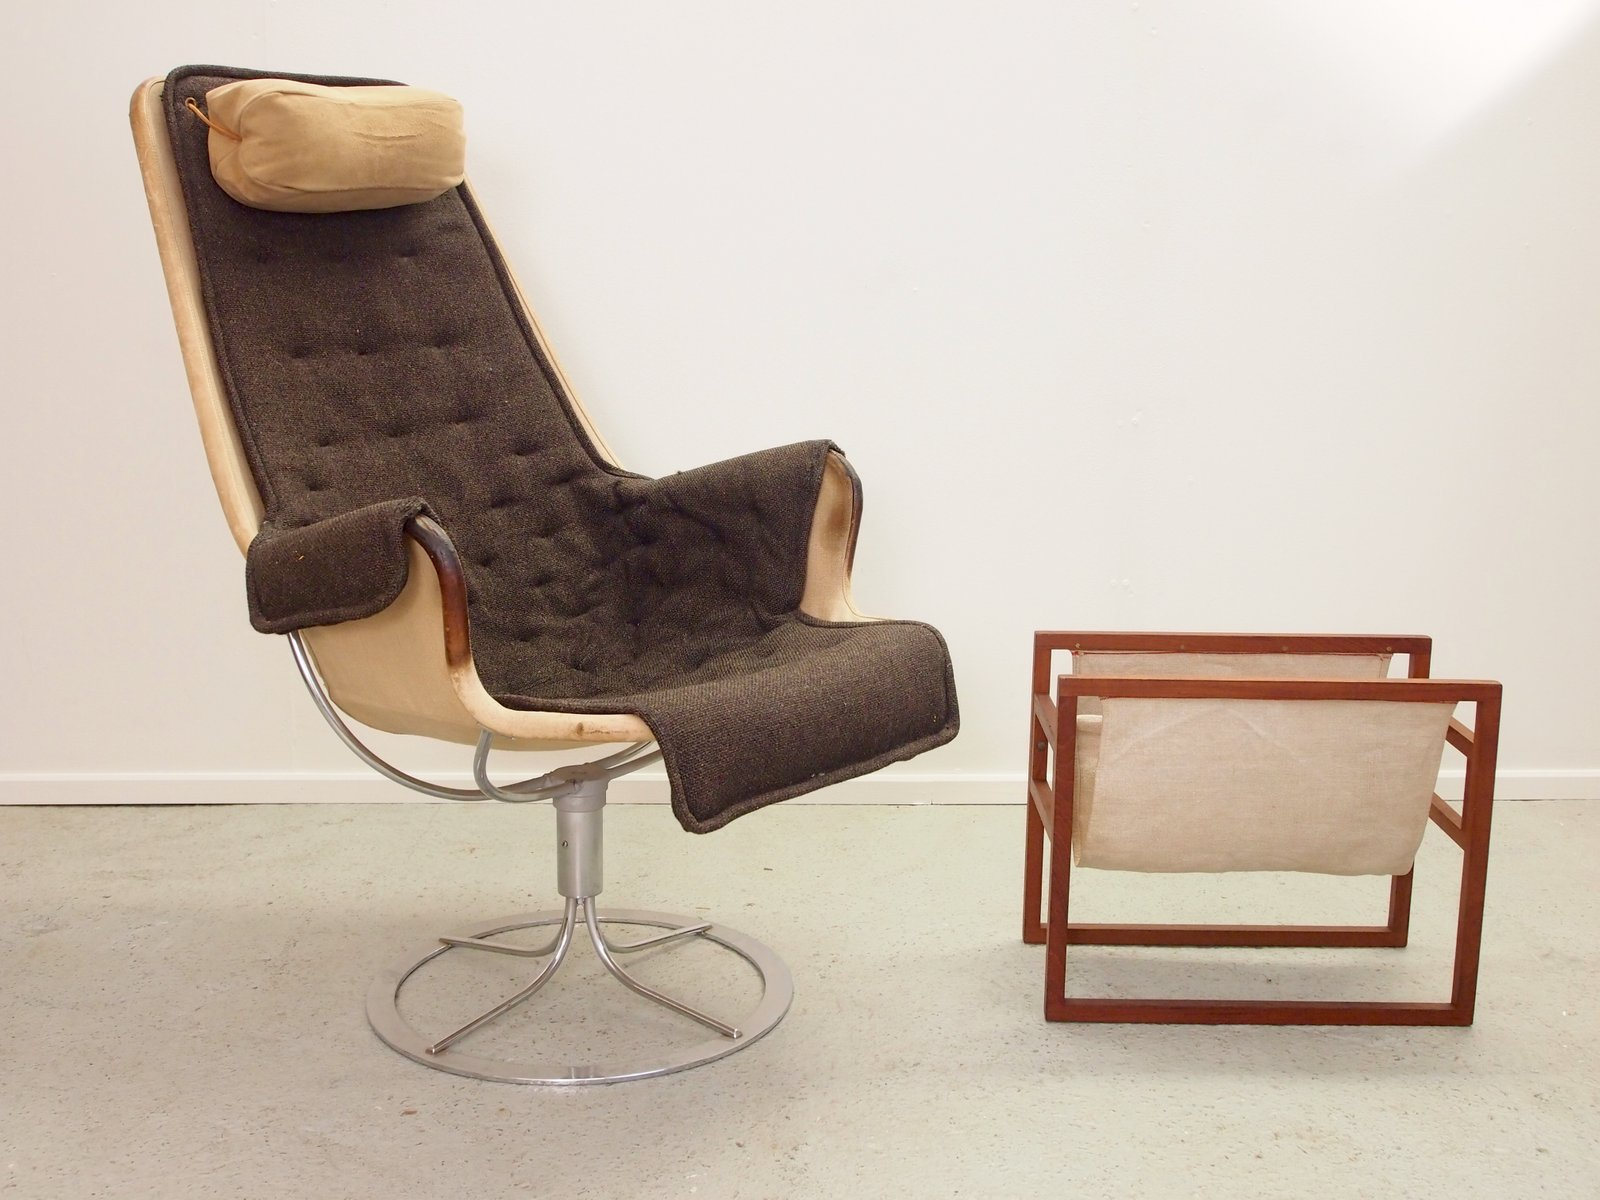 Jetson Chair by Bruno Mathsson for DUX 1969 for sale at Pamono